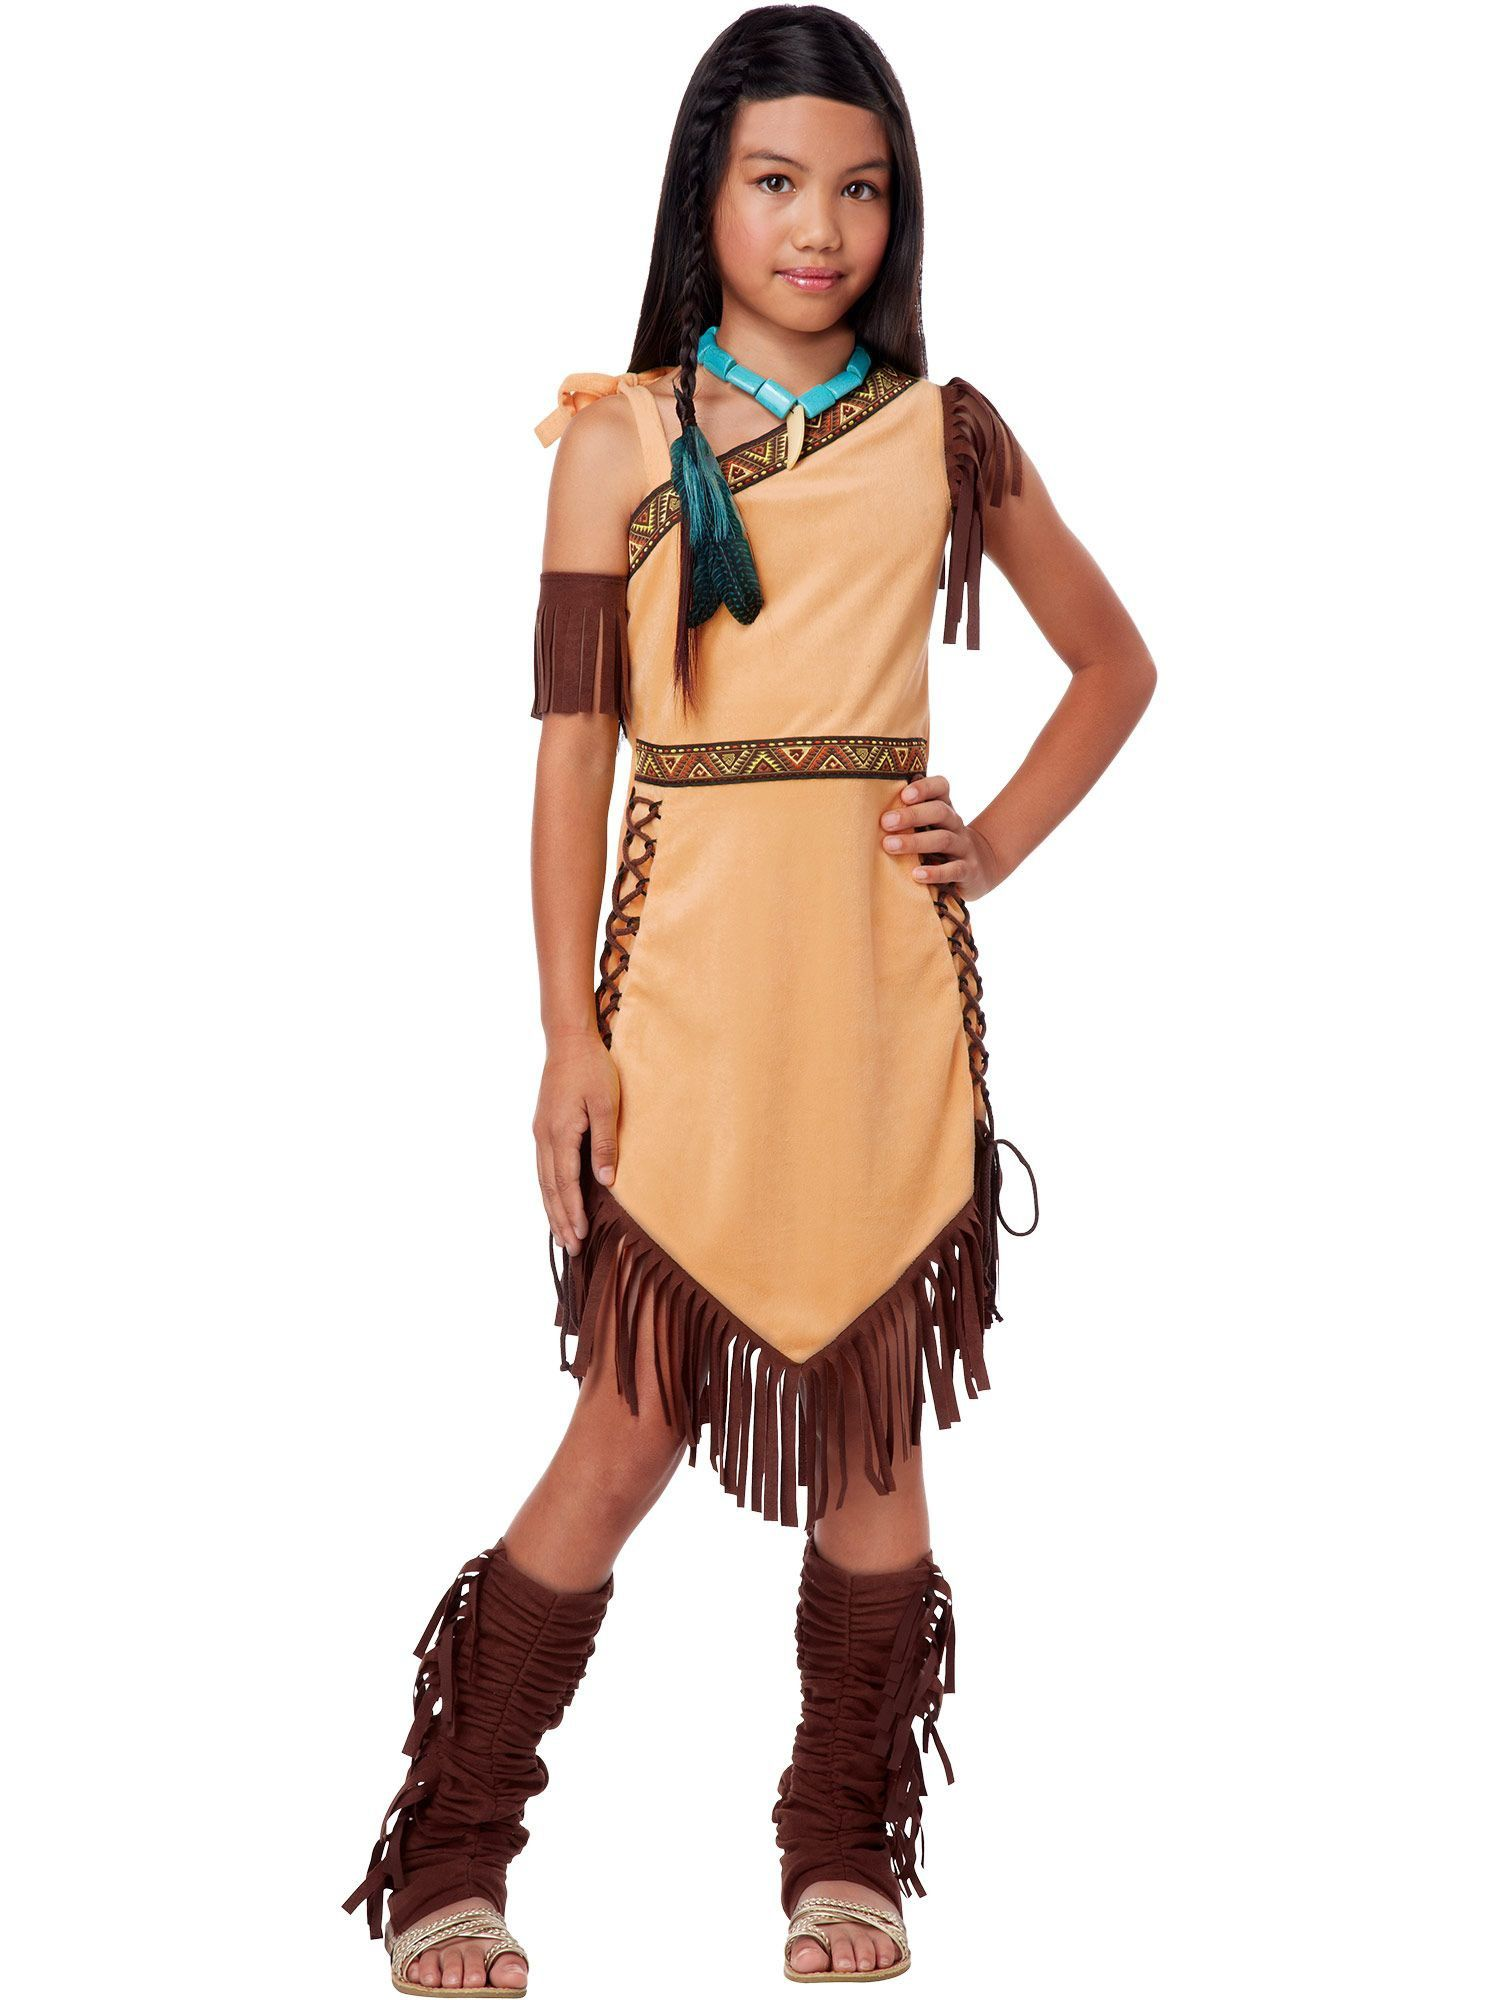 c1842a182e Native American Beauty Girls Costume - Girls Costumes for 2018 ...